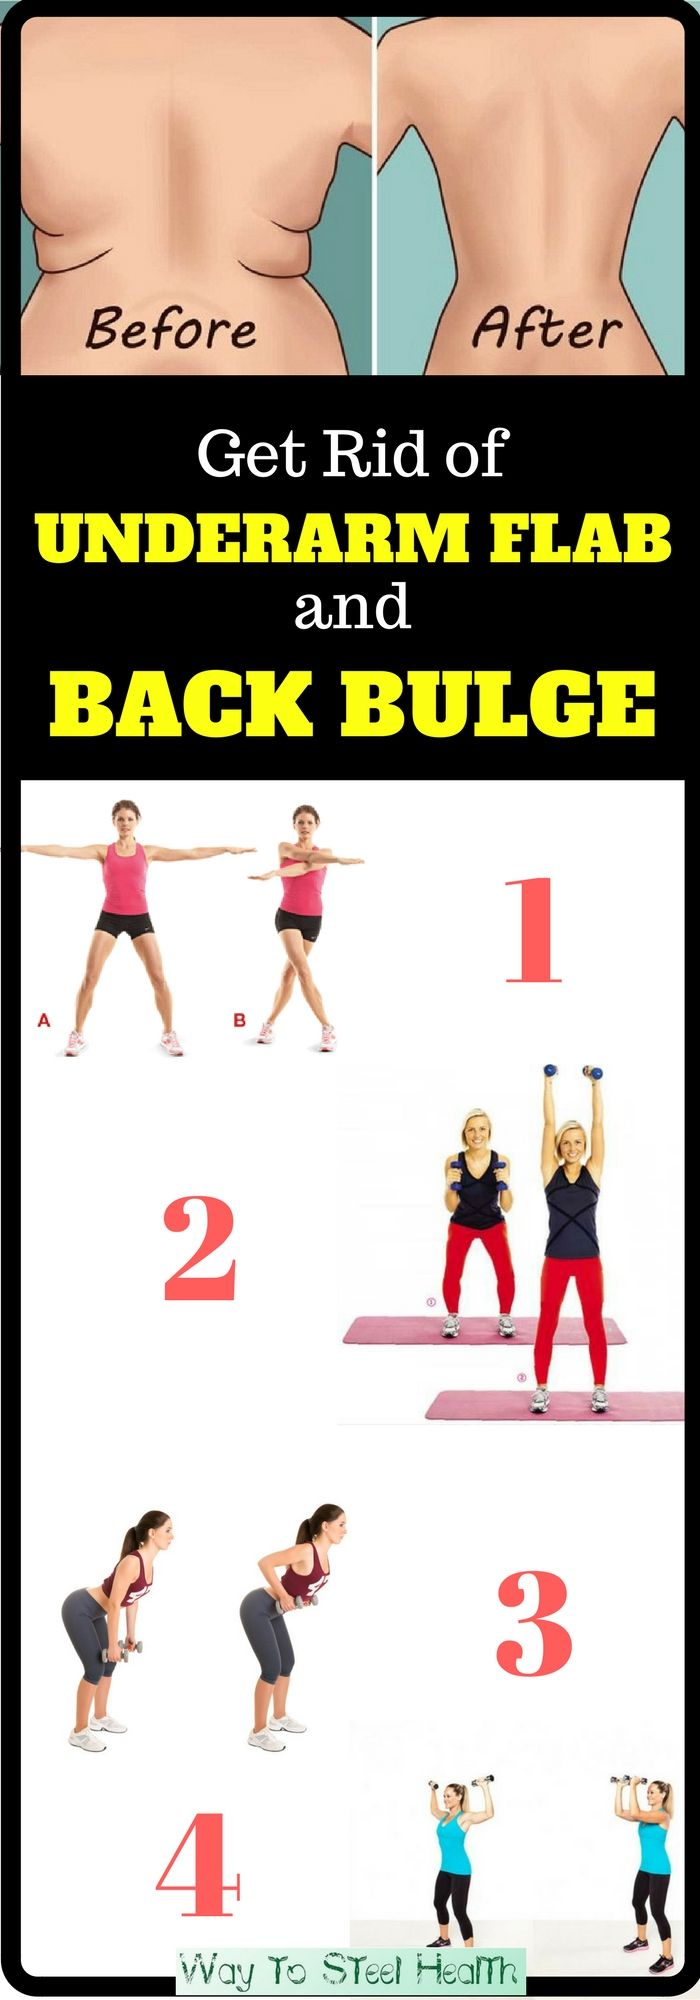 e9d3b7a9c3 4 Quick Exercises to Get Rid of Underarm Flab and Back Bulge in 3 Weeks